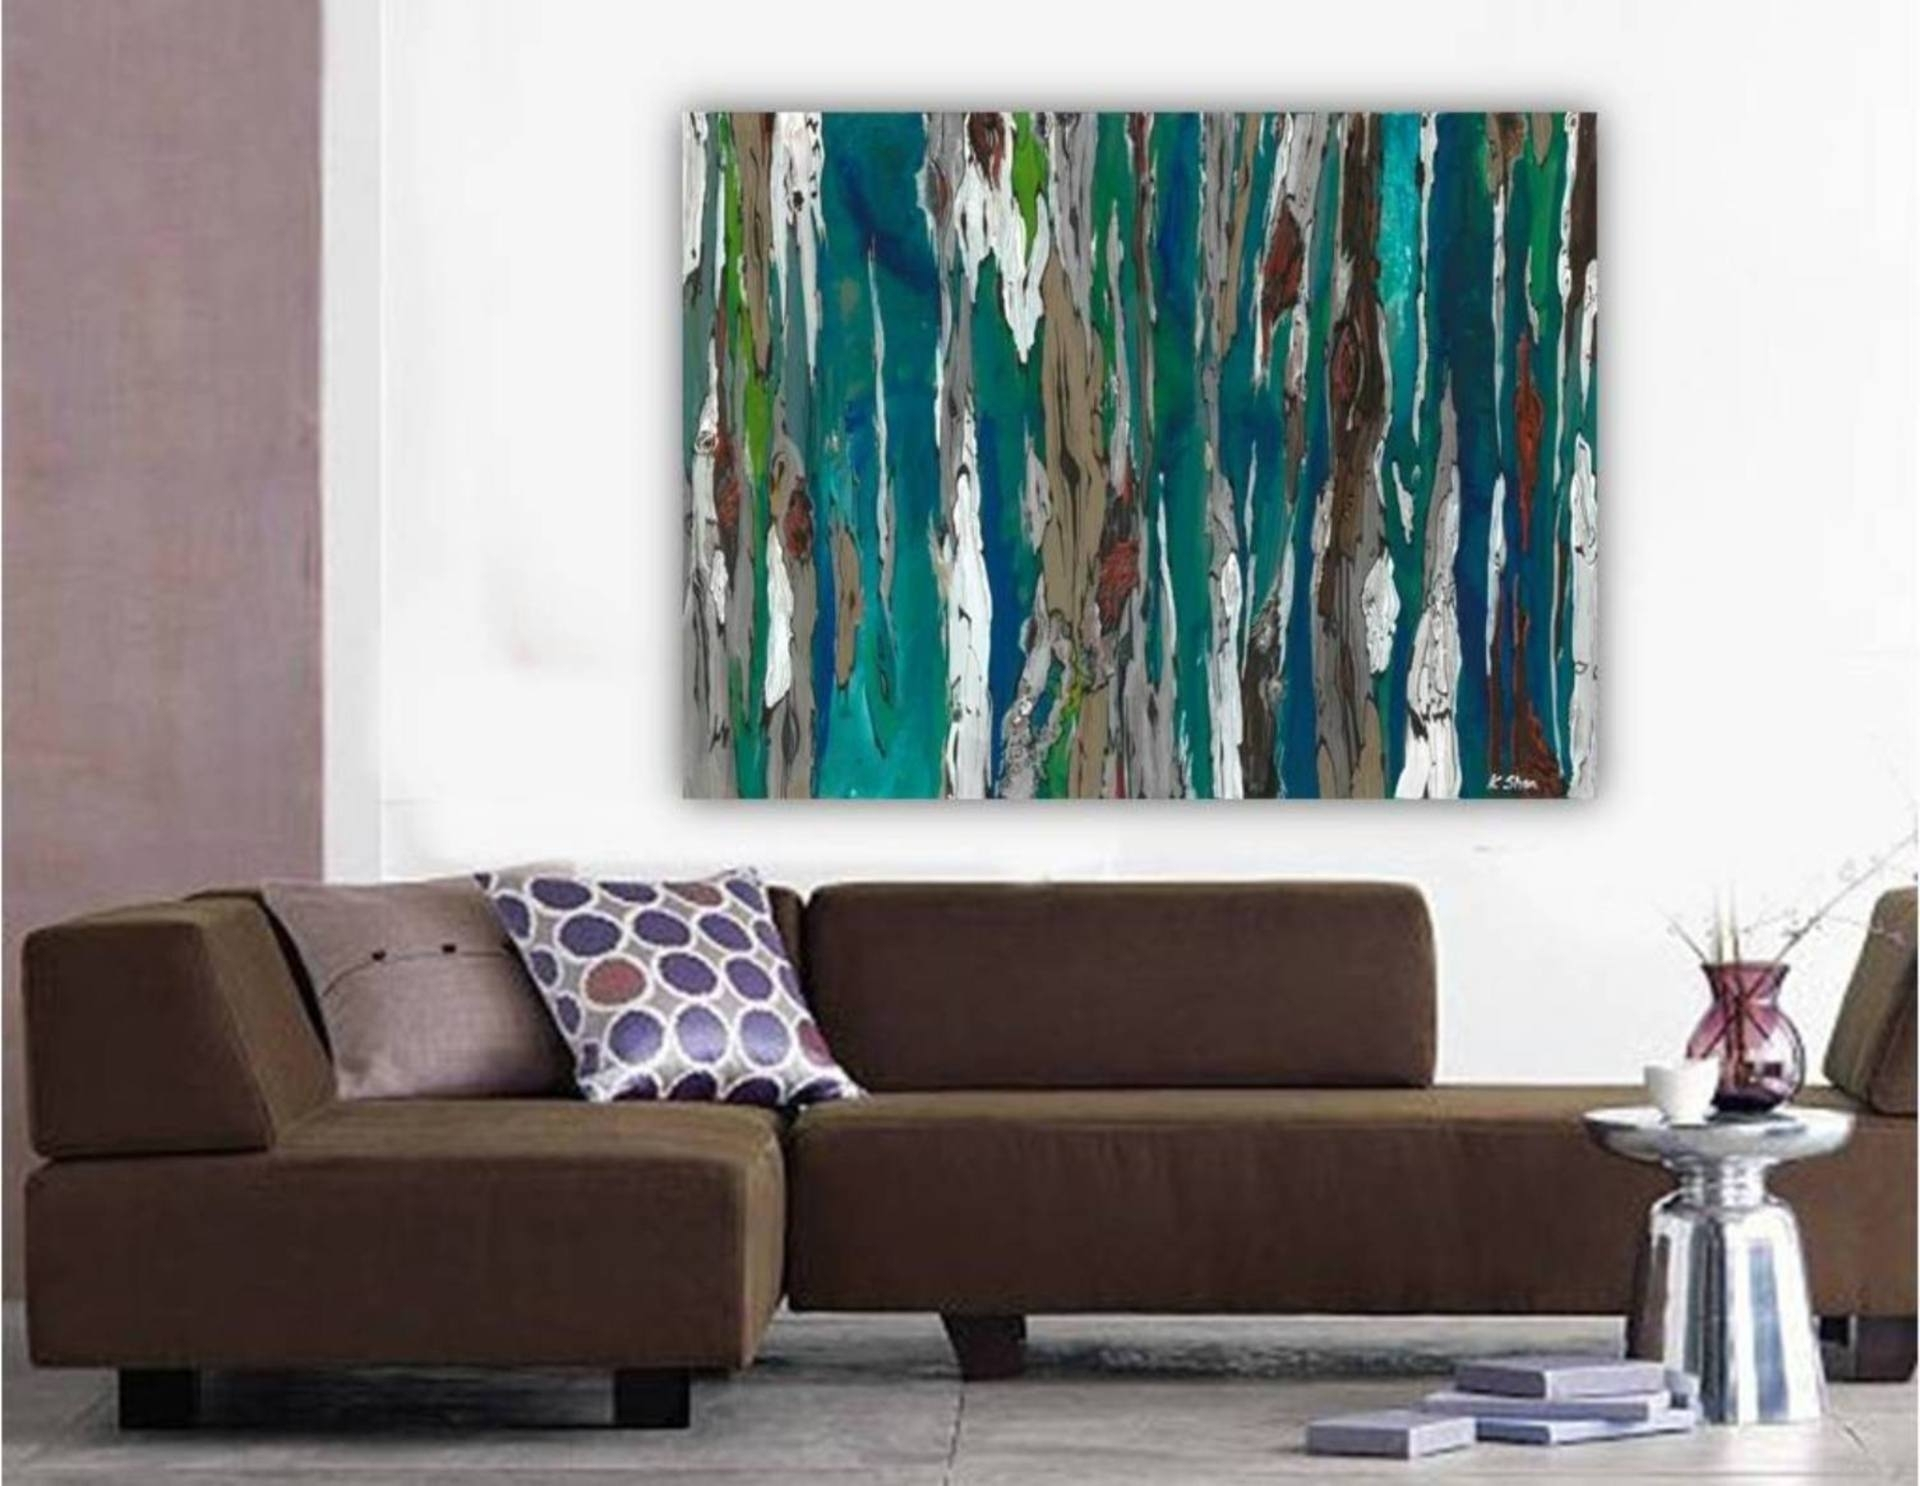 Saatchi Art: Large Contemporary Original Abstract Tree Landscape Within Best And Newest Teal And Brown Wall Art (Gallery 8 of 20)